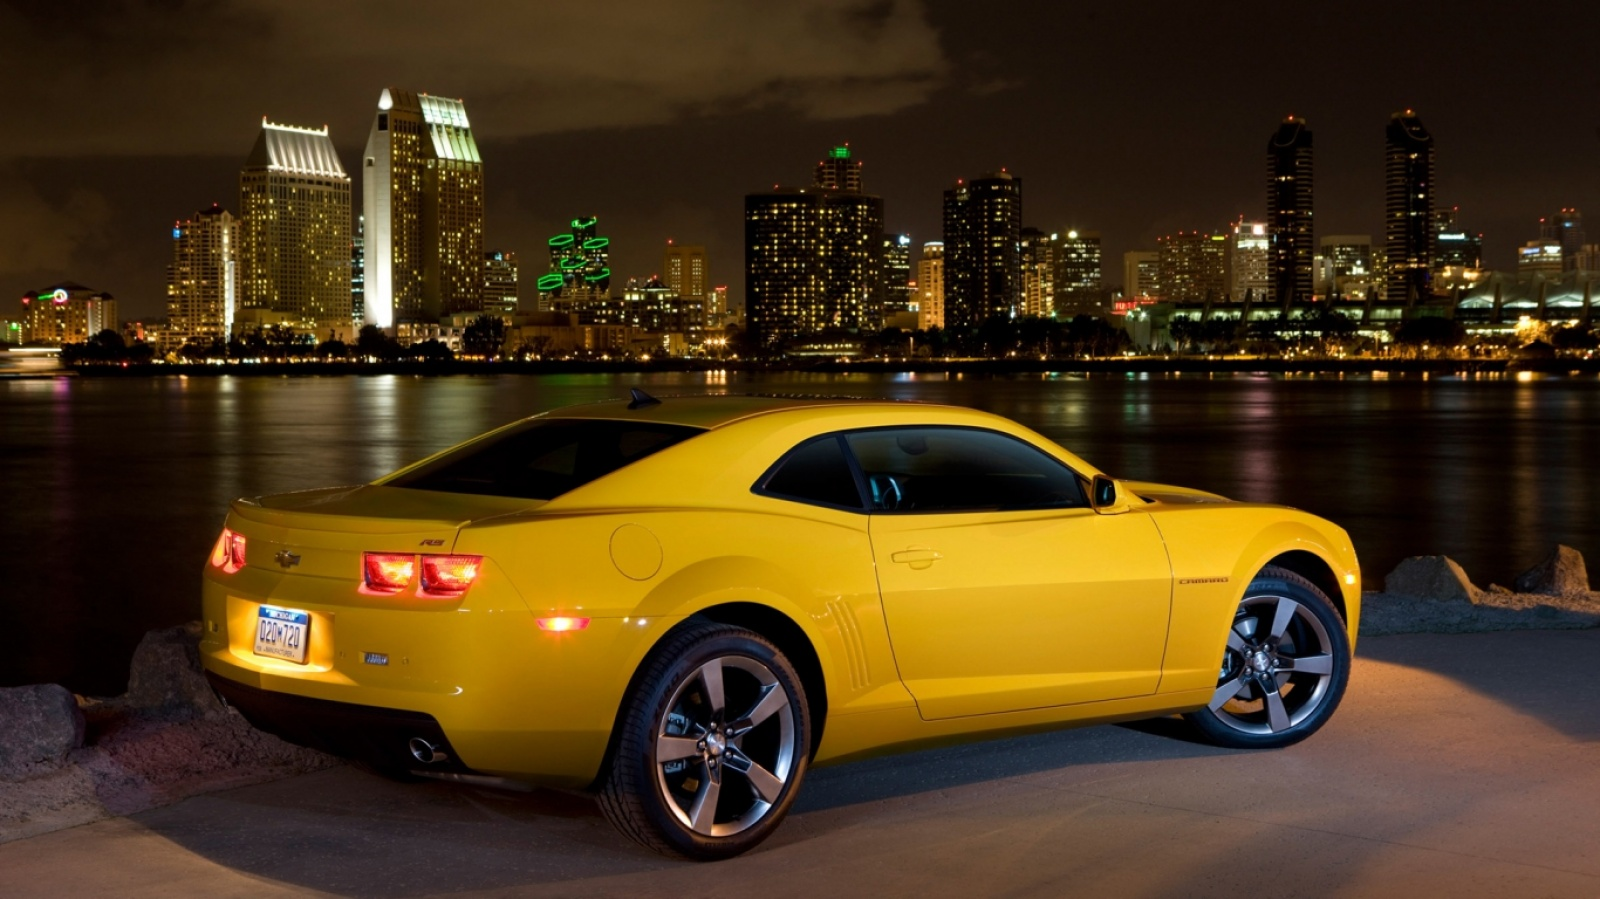 2011 Chevrolet Camaro Wallpapers   9342 1600x899